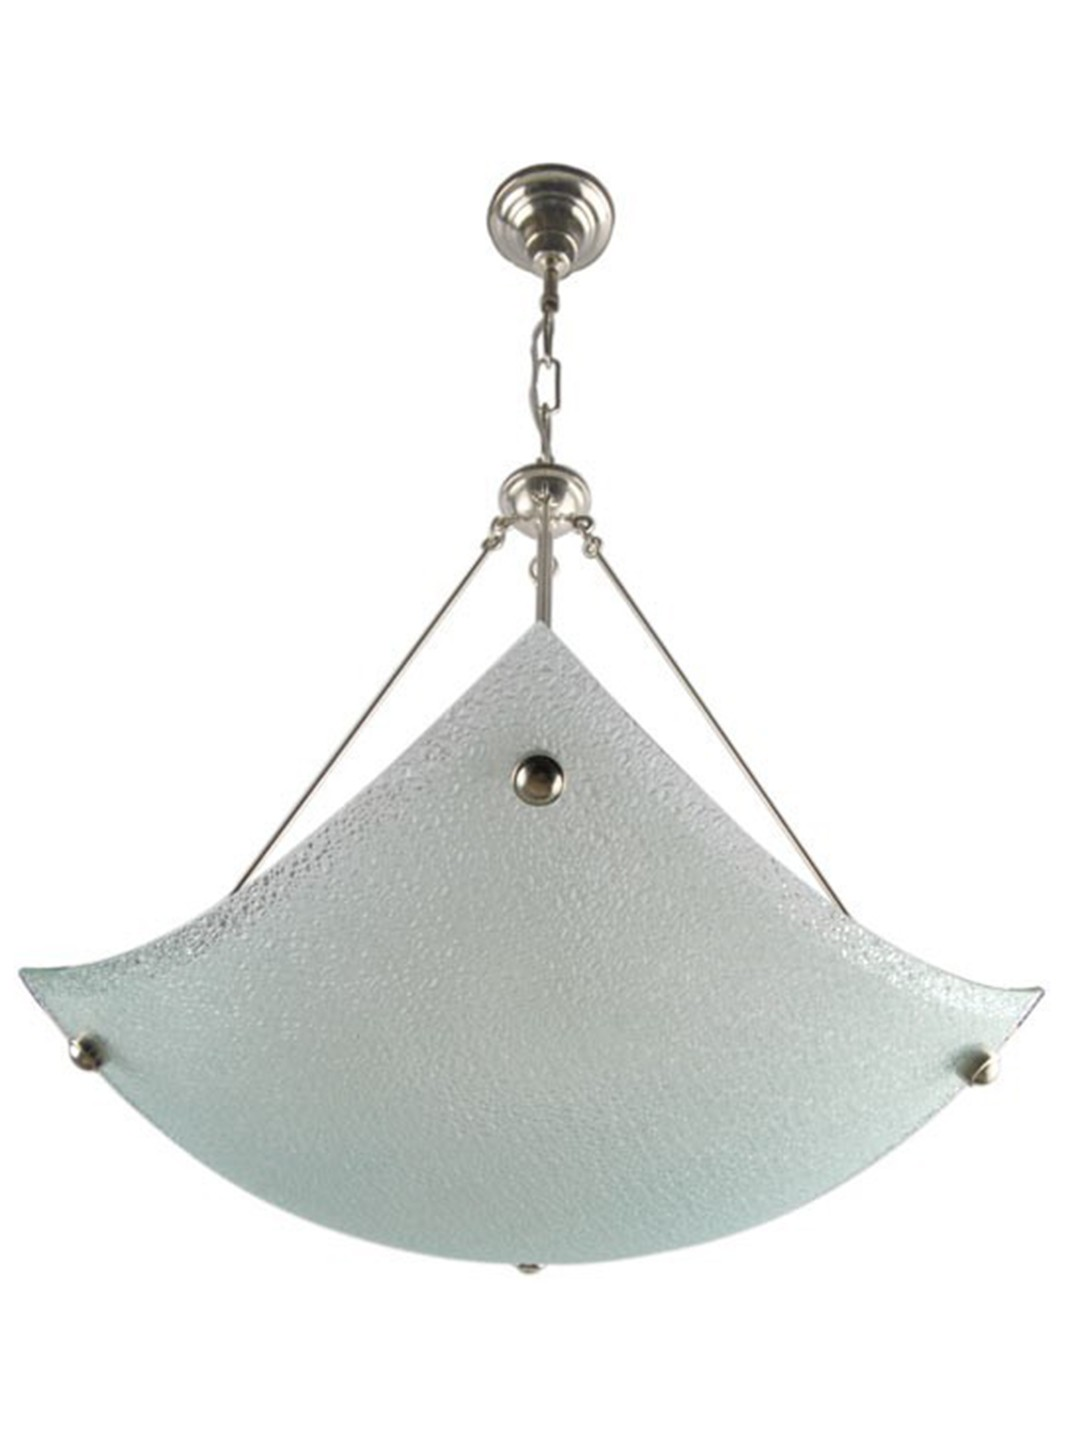 1074 Hanging Light